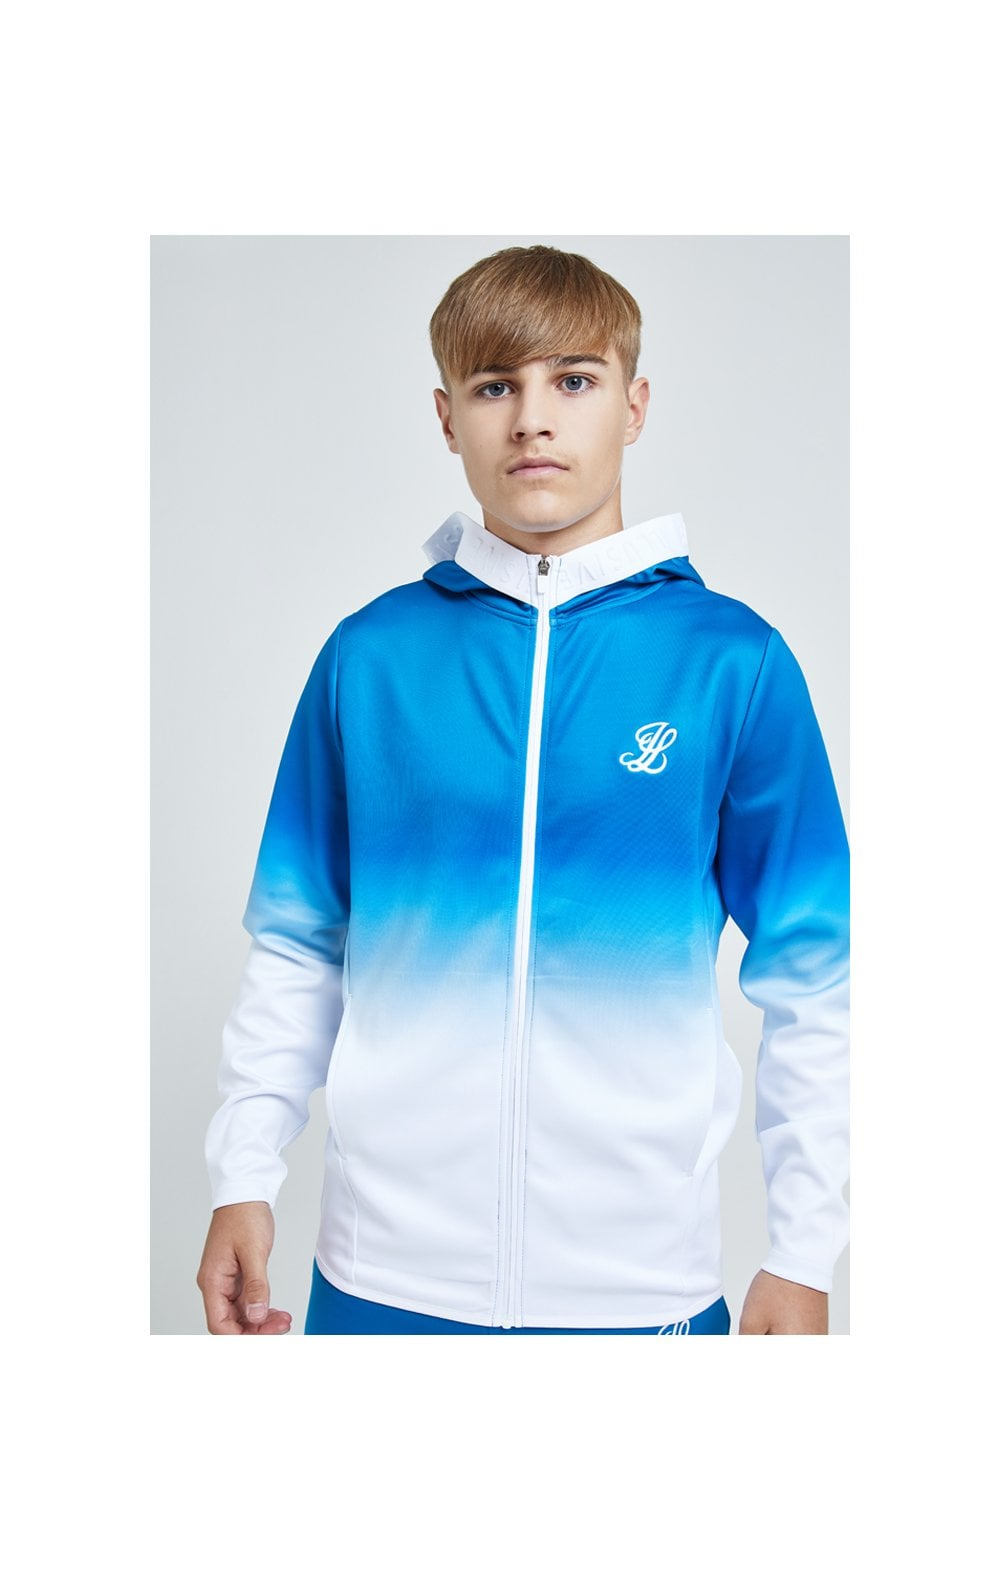 Illusive London Elevate Agility Zip Through Hoodie - Blue & White